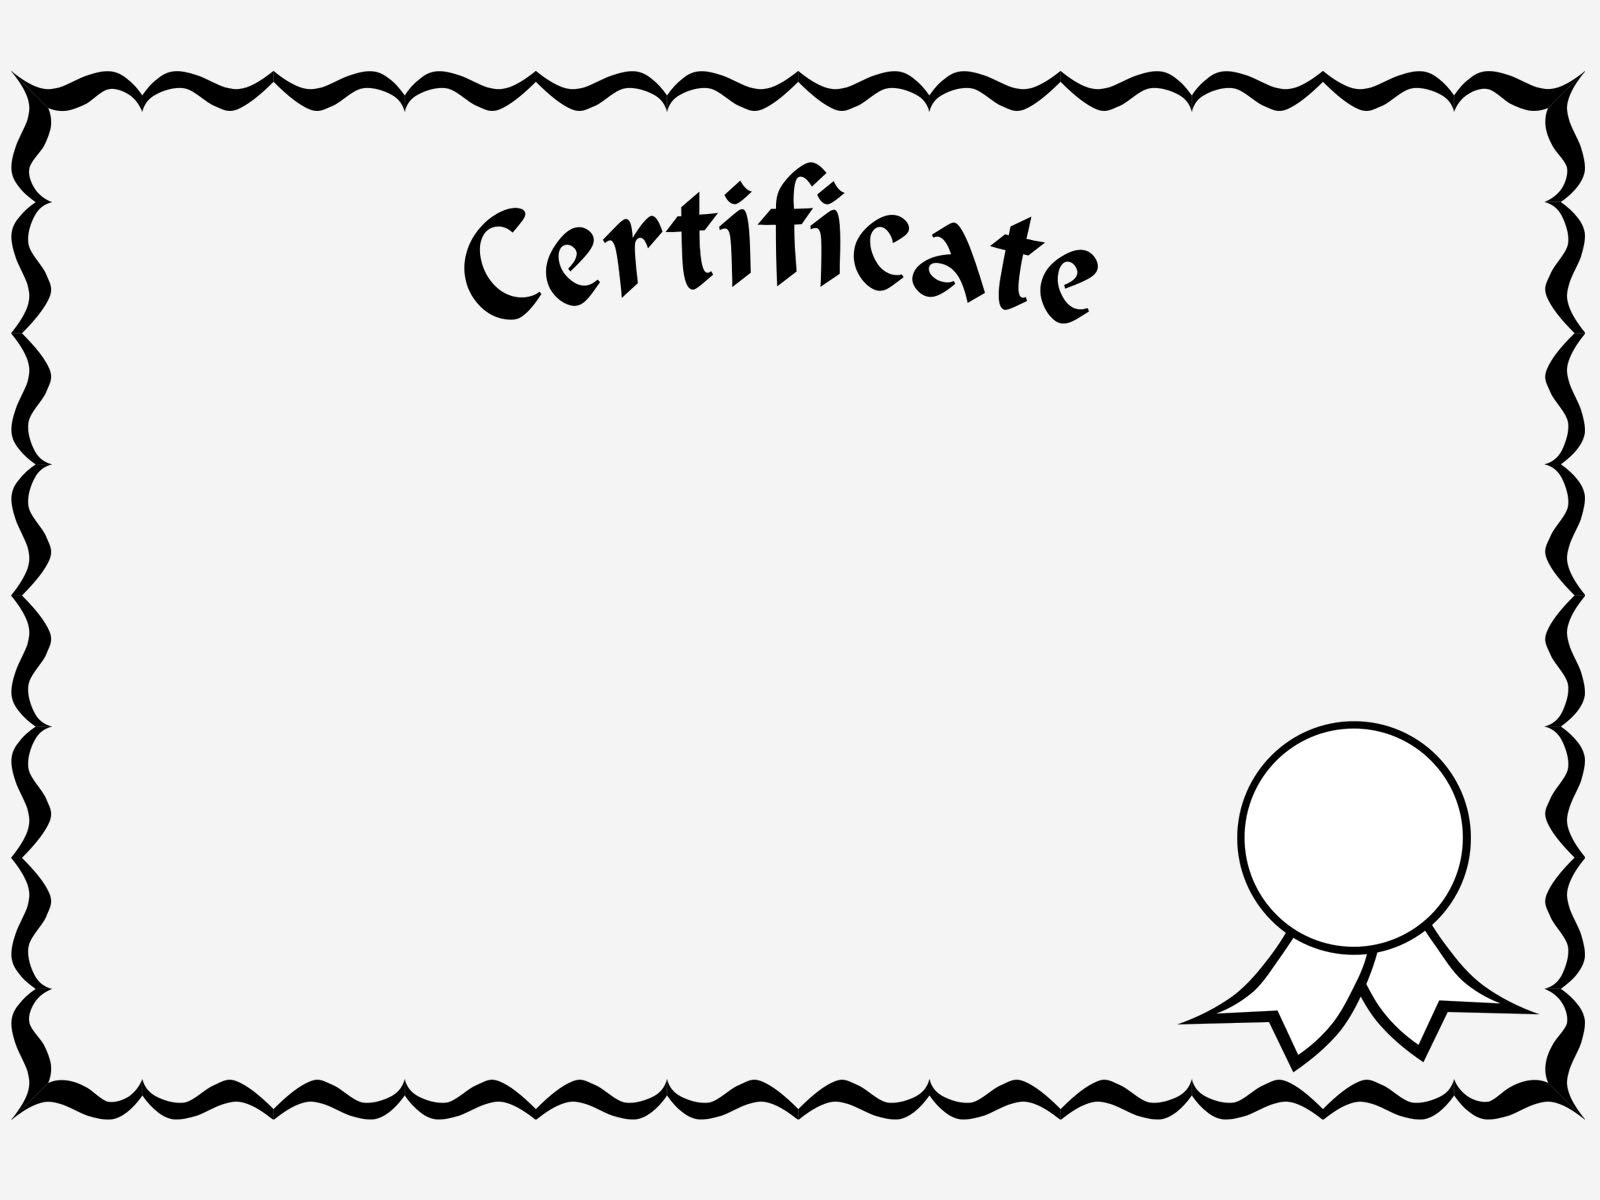 Diploma Scroll Clipart Free Download Best Diploma Scroll Clipart